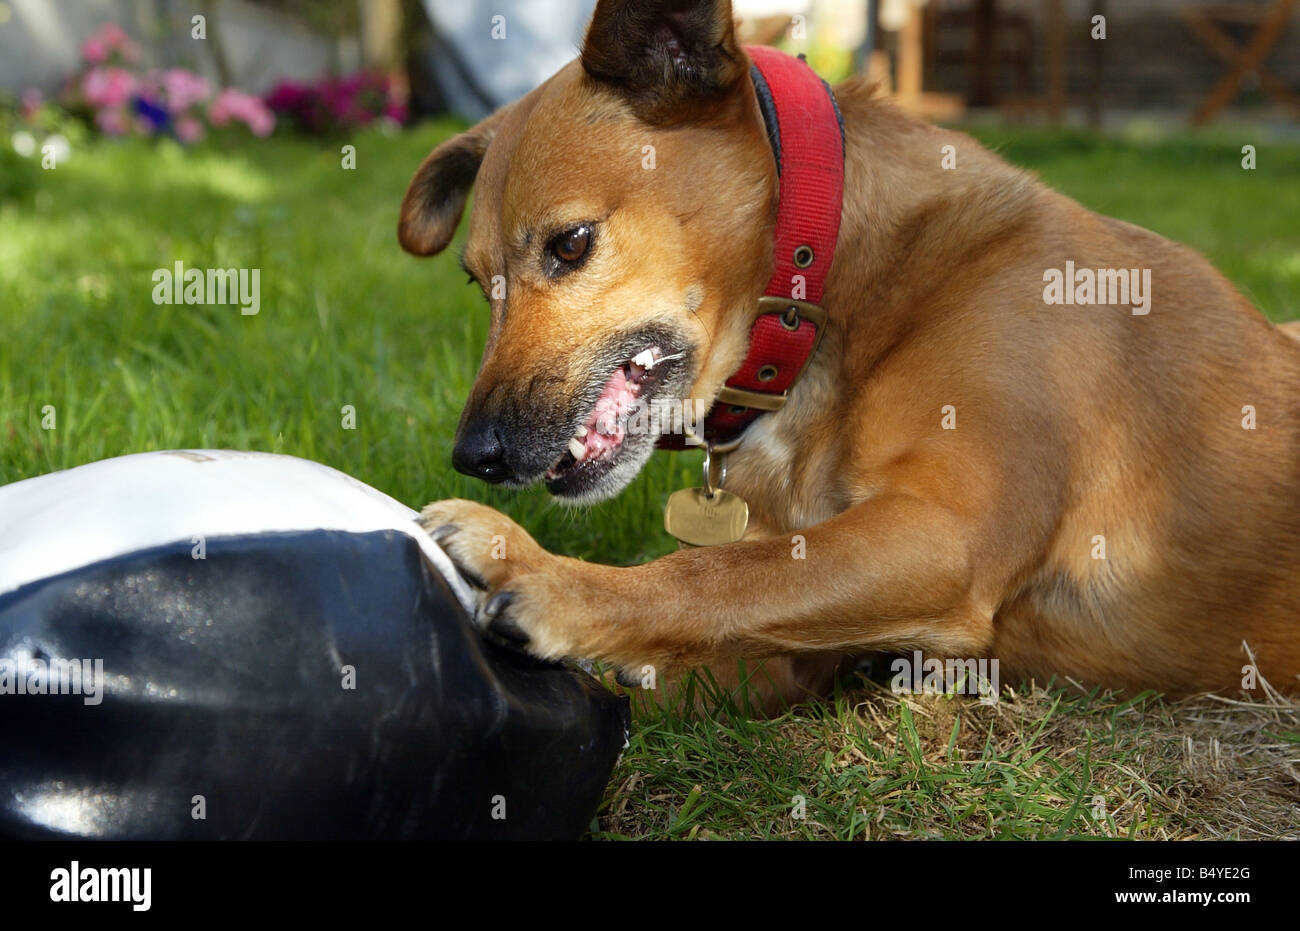 Jack Russell terrier crossbreed dog playing with a rugby ball - Stock Image